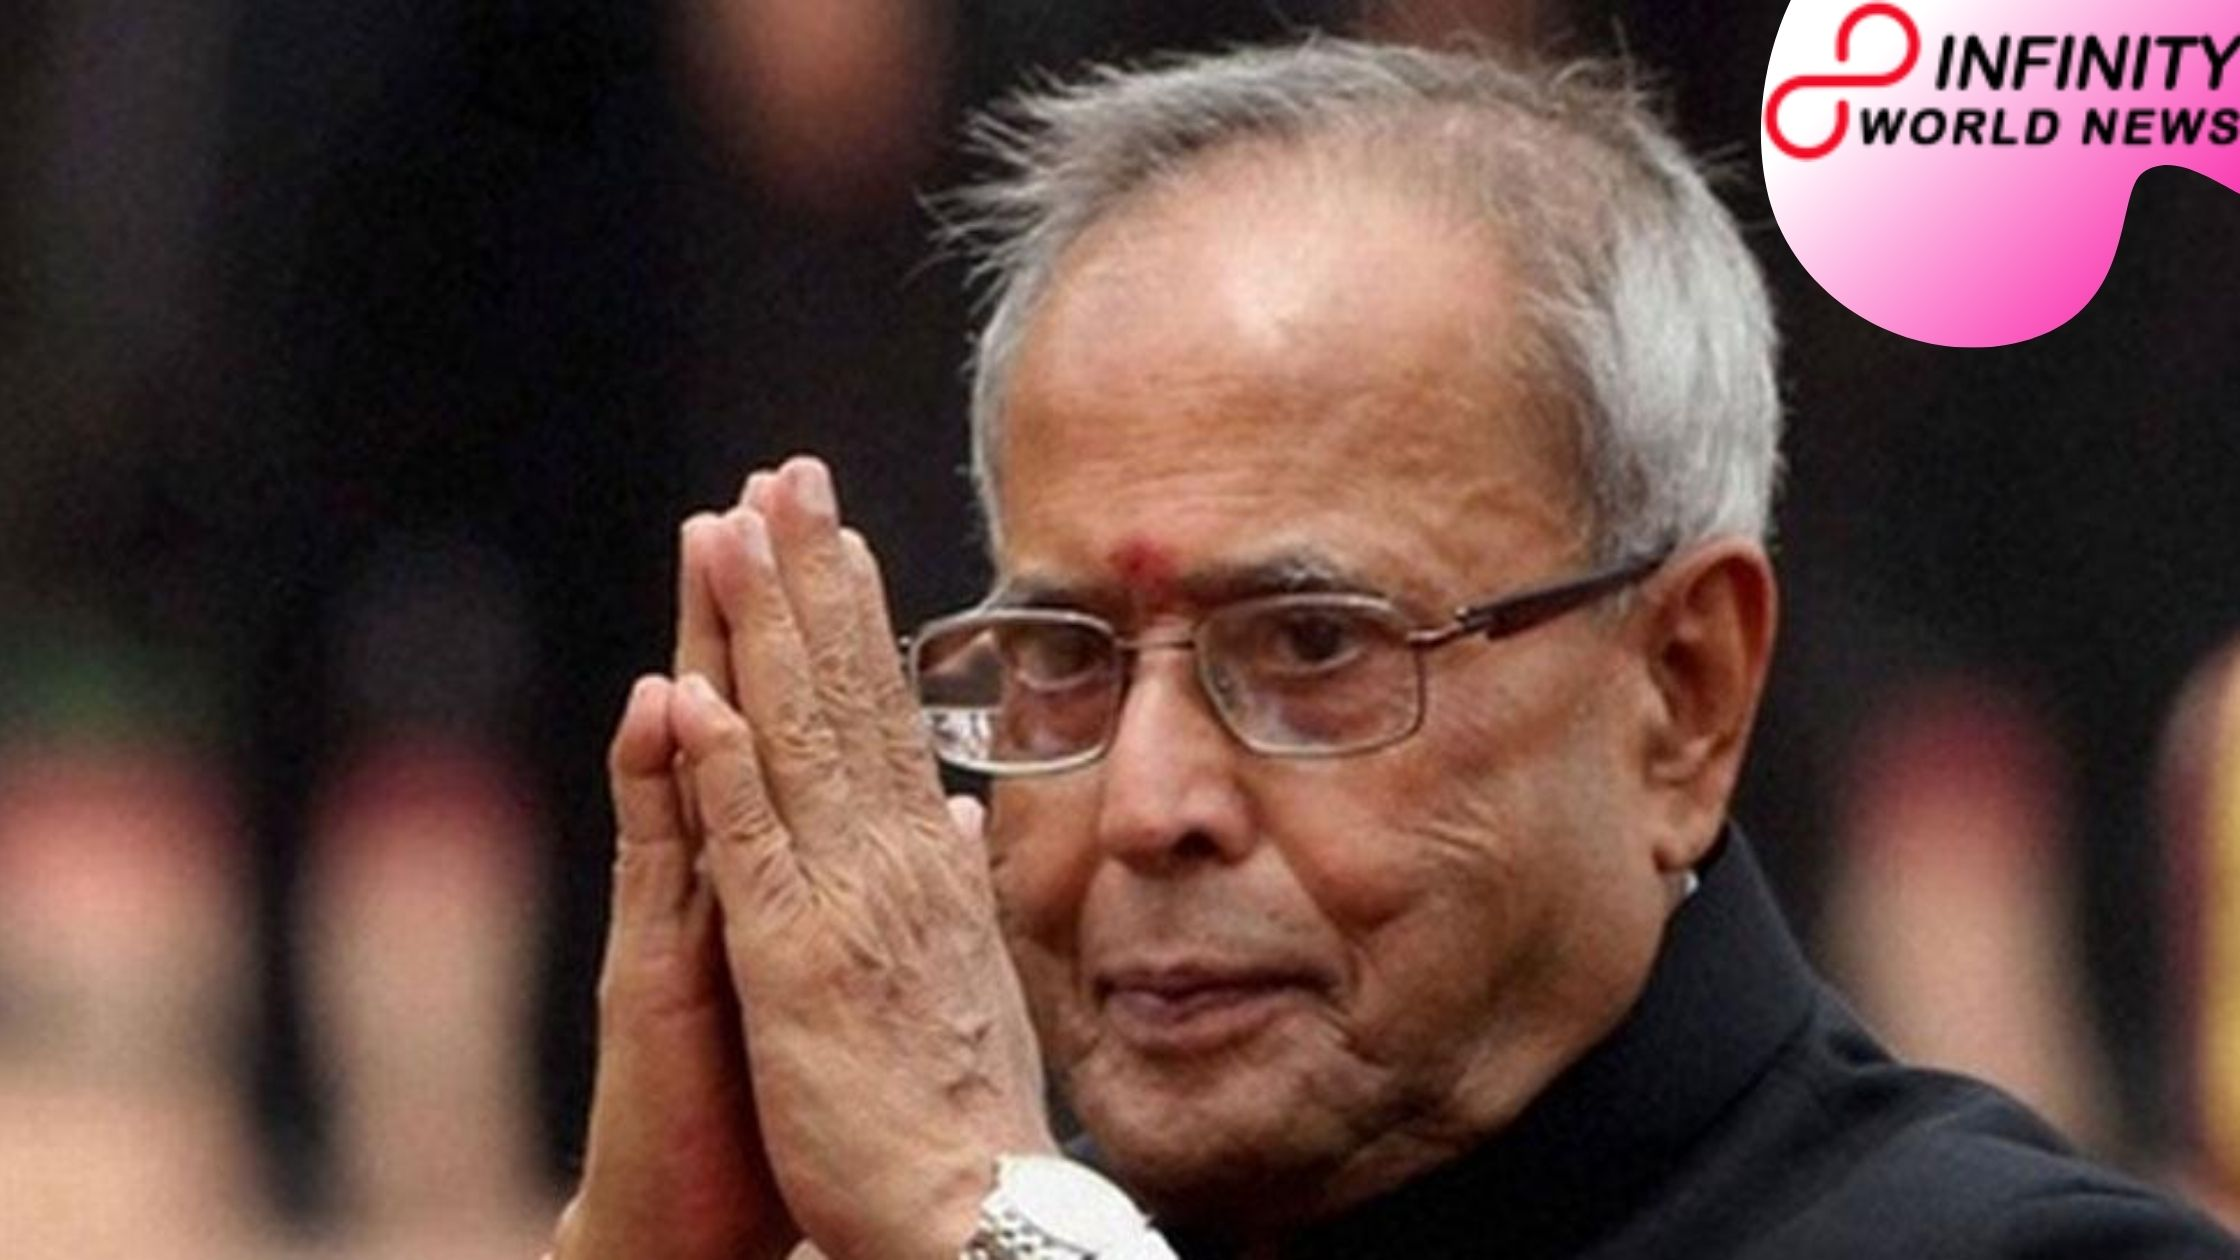 Still, He Is Called _Best PM Of India Never Had_, Pranab Mukherjee Had Bipartisan Respect